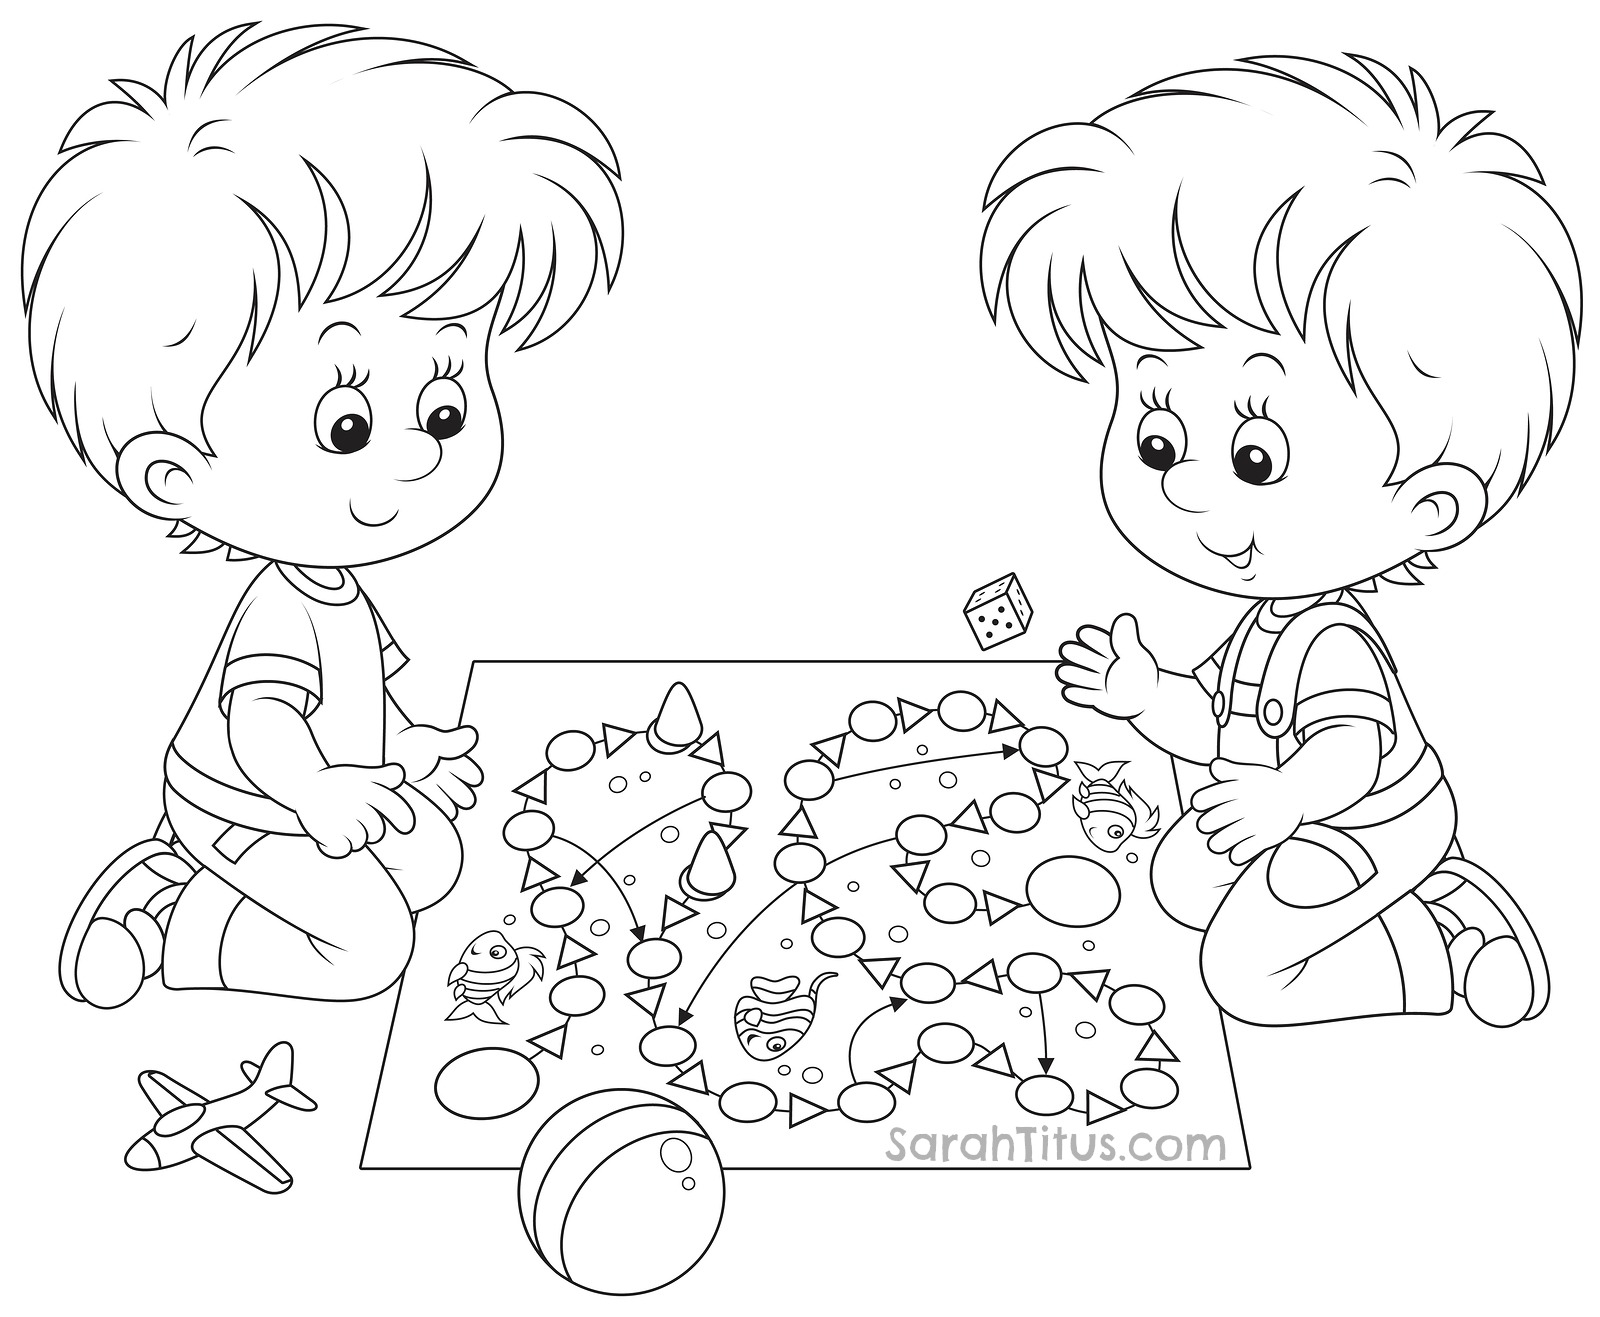 Coloring games to play - View Larger Image Image